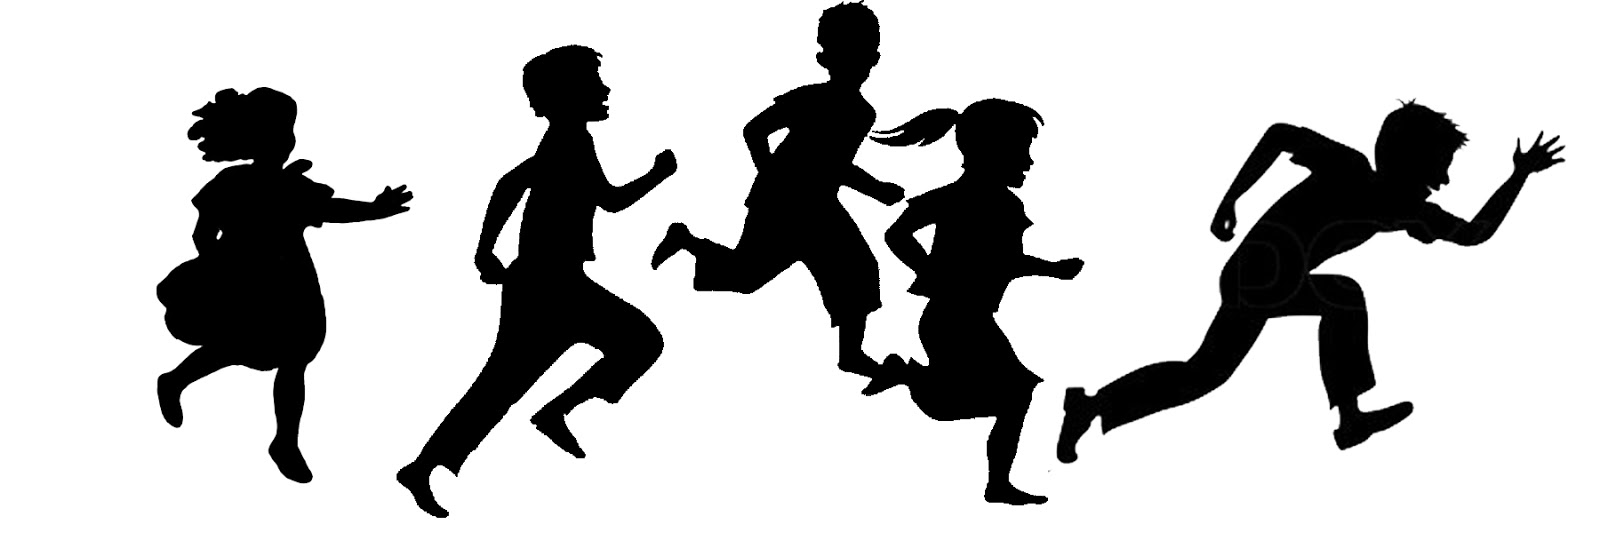 kids running silhouette at getdrawings com free for school cliparts for honor roll assembly school clipart food drop off